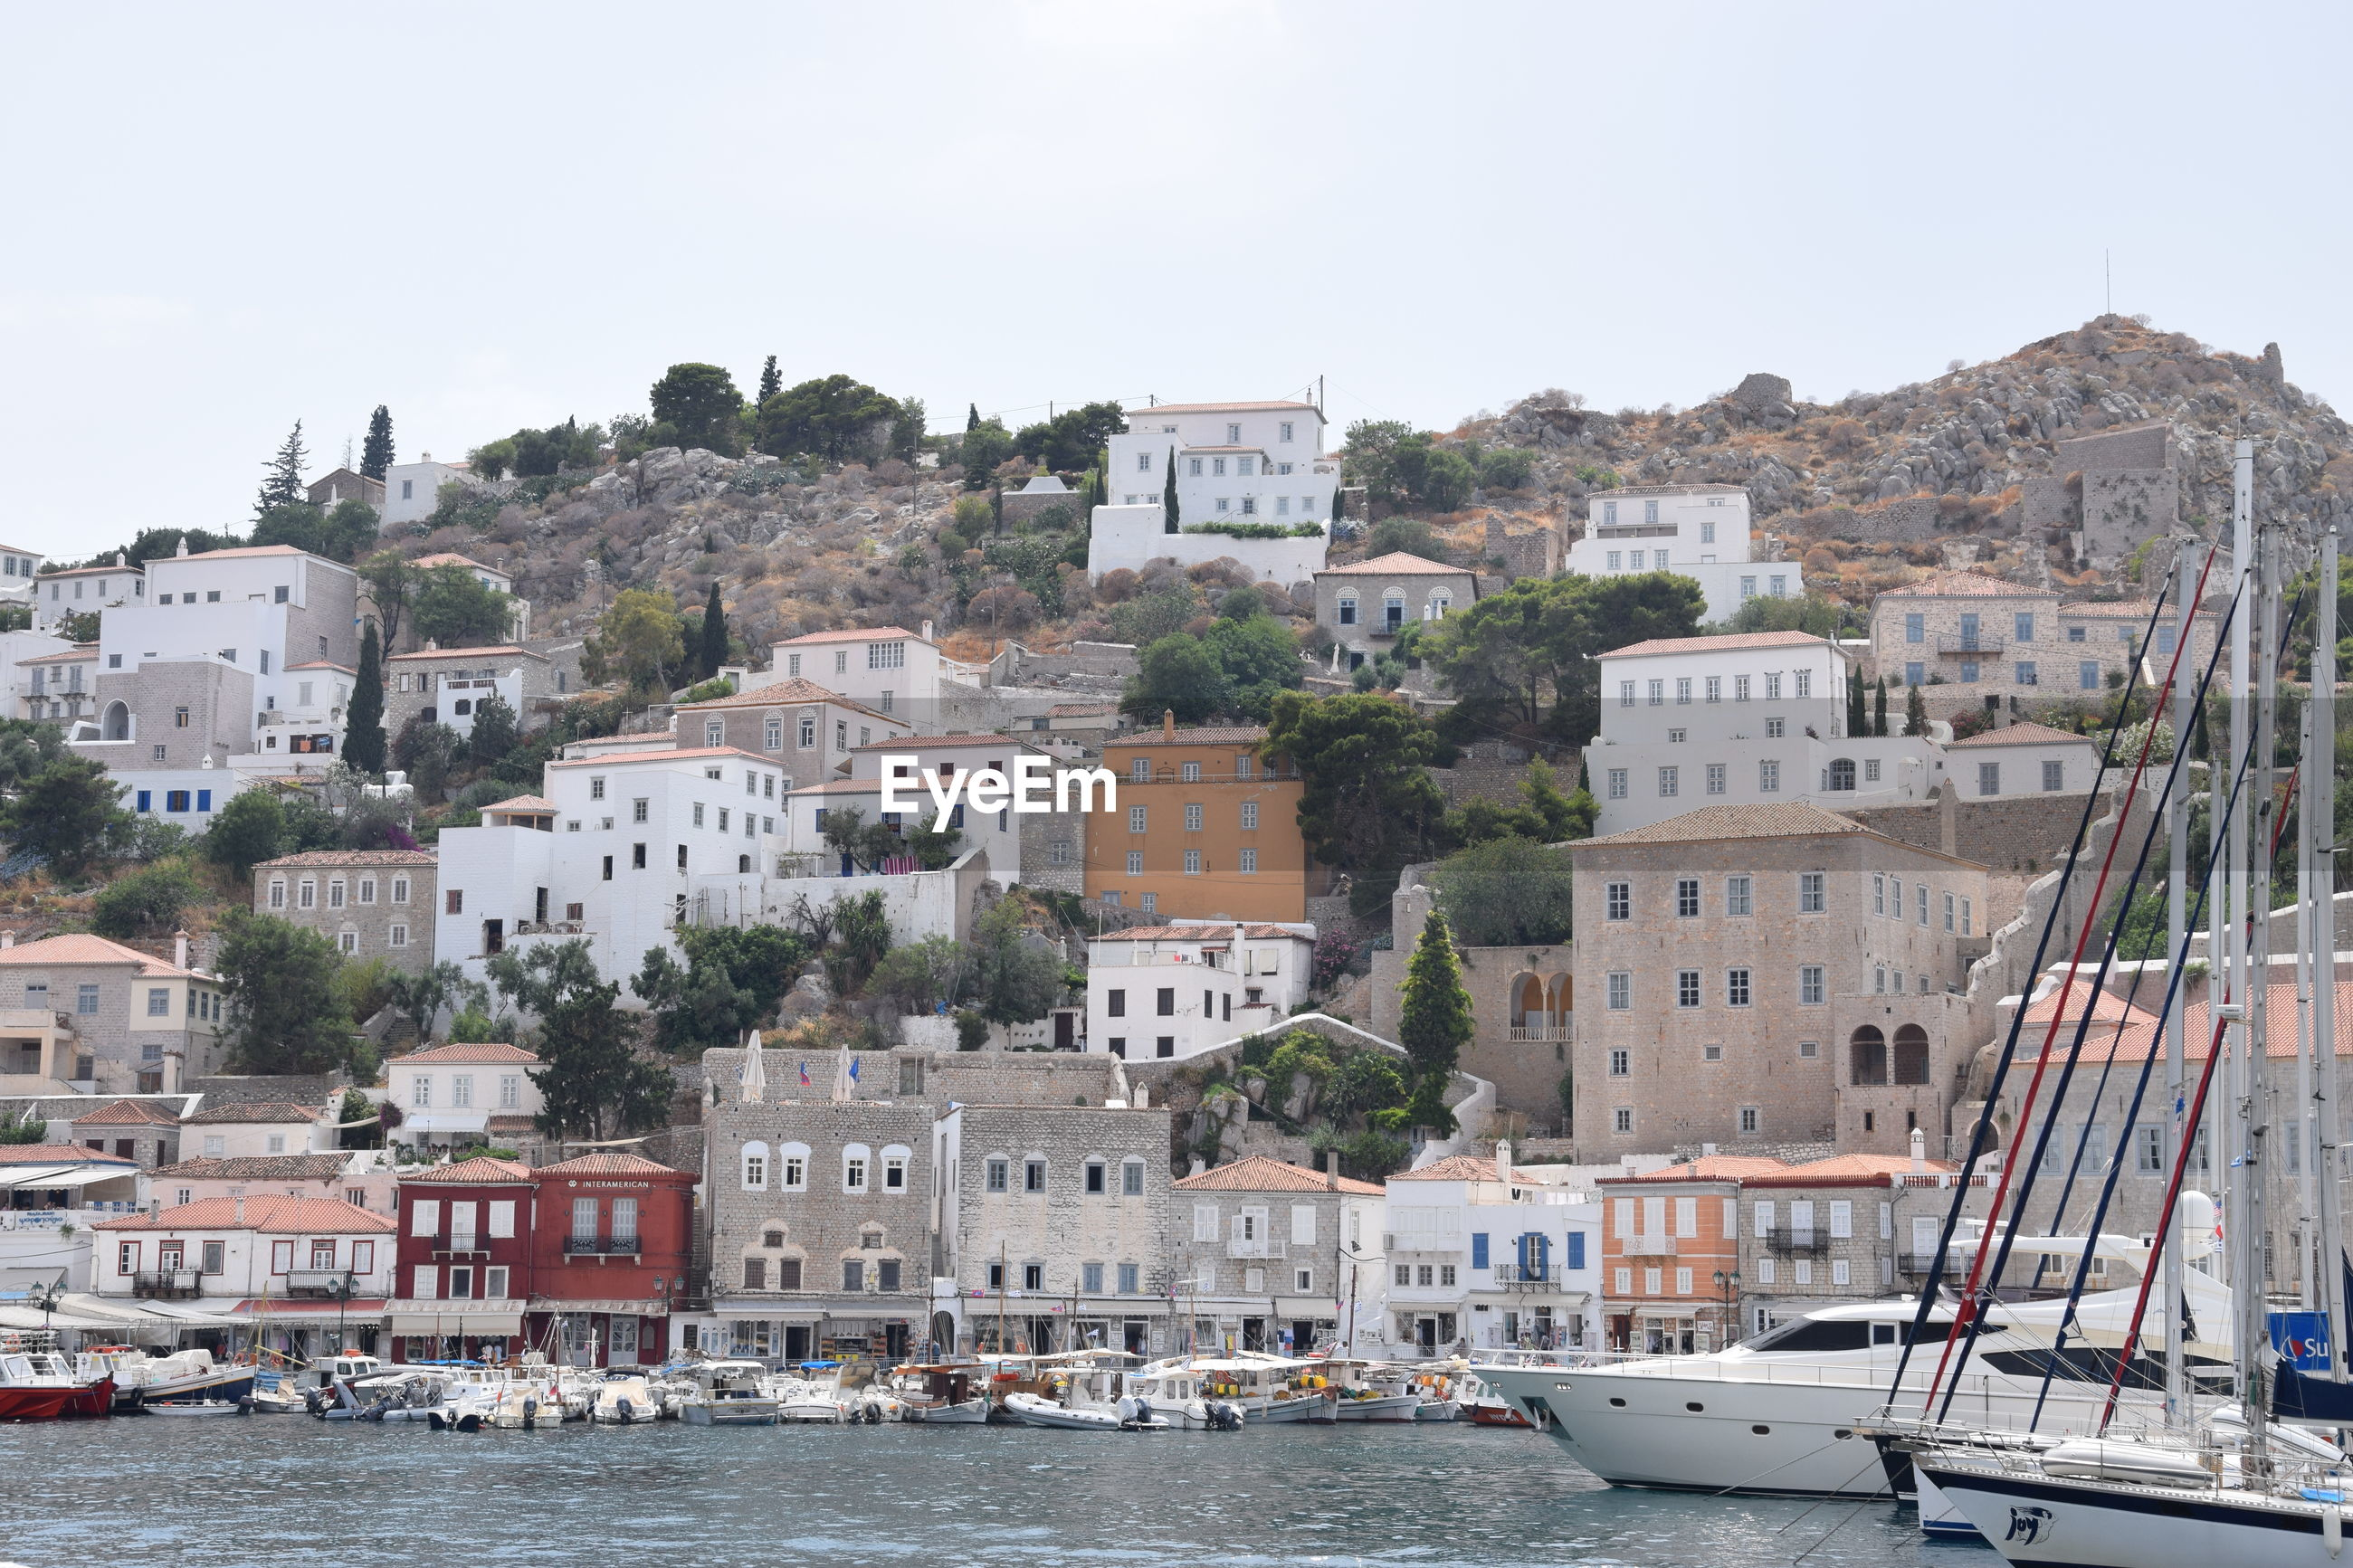 VIEW OF TOWNSCAPE BY SEA AGAINST CLEAR SKY